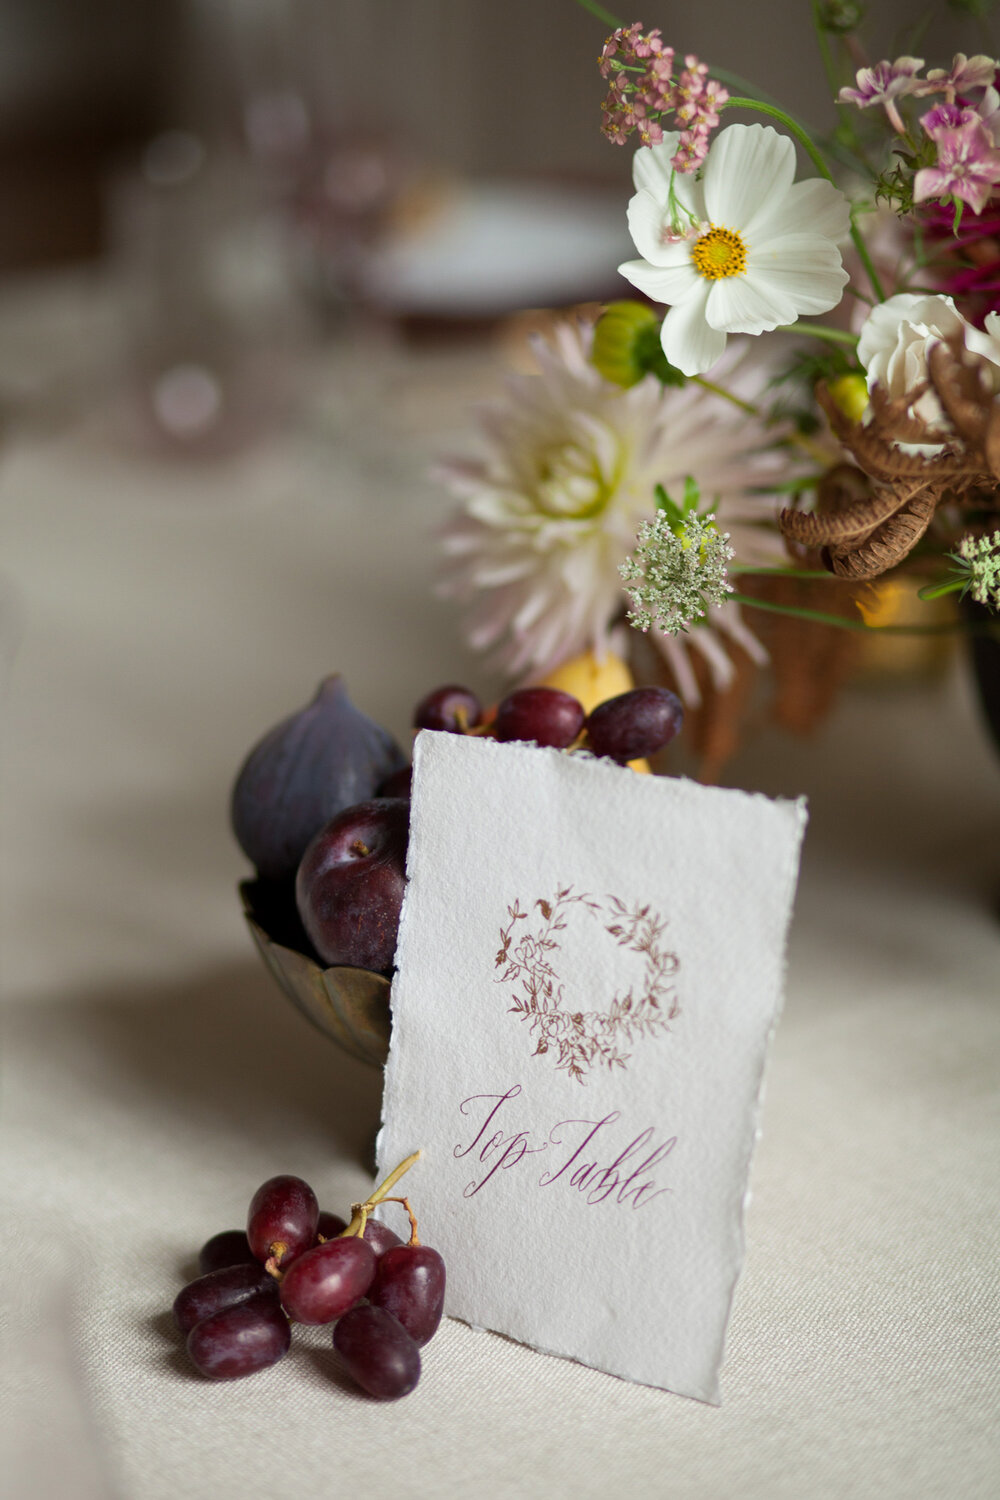 Calligraphy table card by Mathilda Lundin Calligraphy